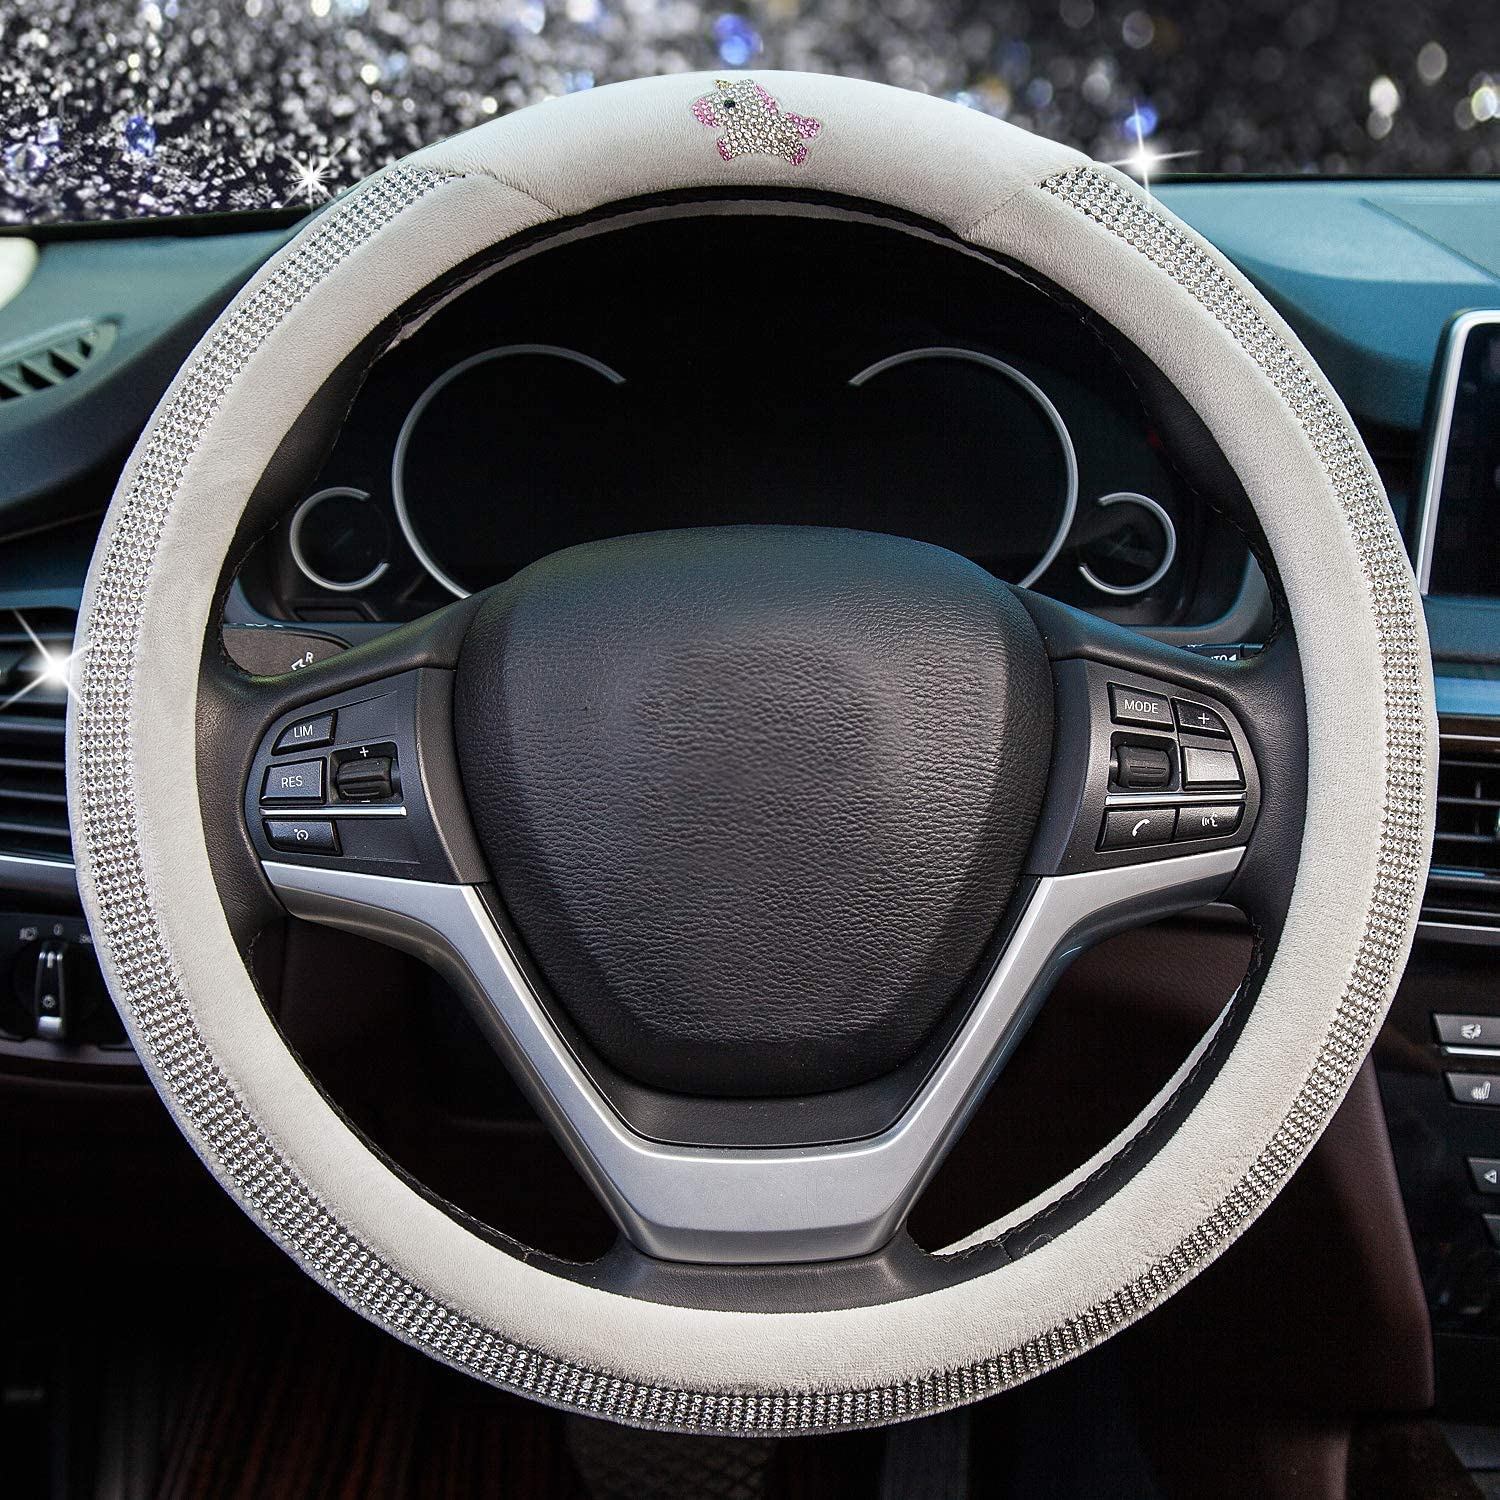 Winter Warm Plush Car Wheel Cover with Bling Crystal Rhinestones Valleycomfy Diamond Steering Wheel Cover for Women Girls Black Universal Fit 15 Inch Anti-Slip Wheel Protector